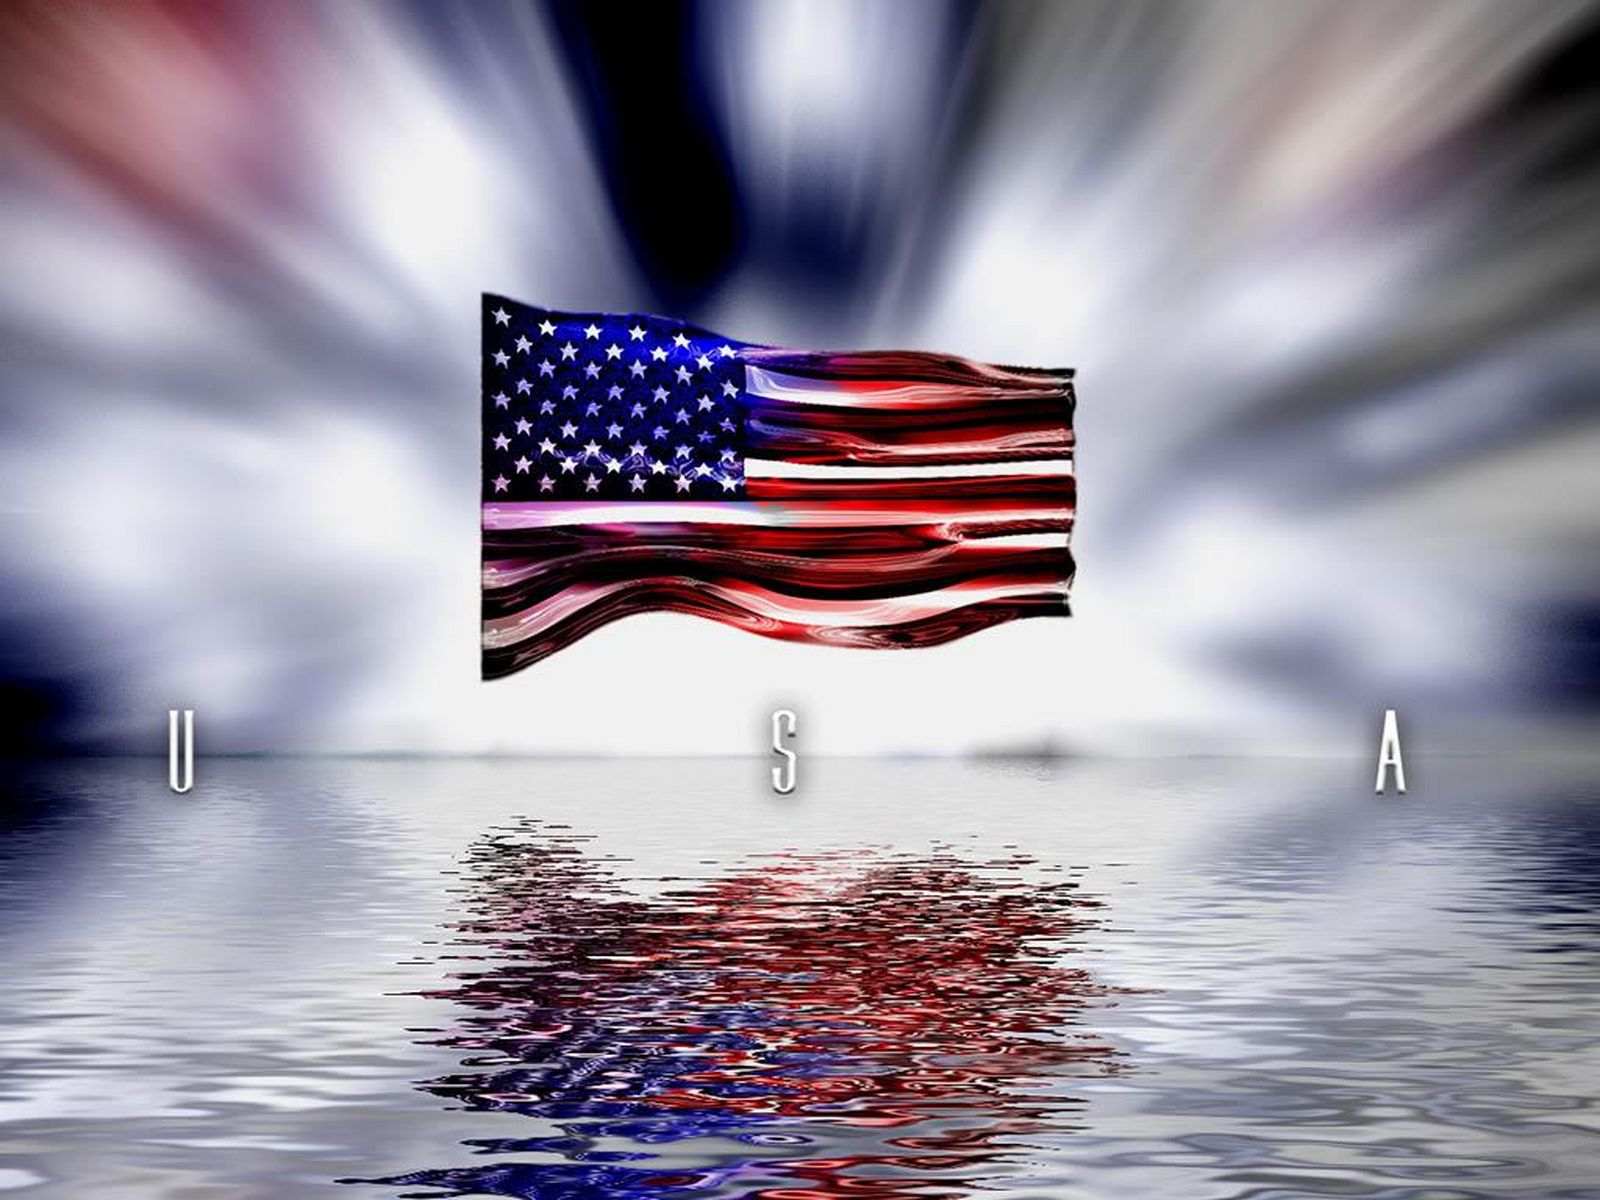 wallpapers usa united - photo #11